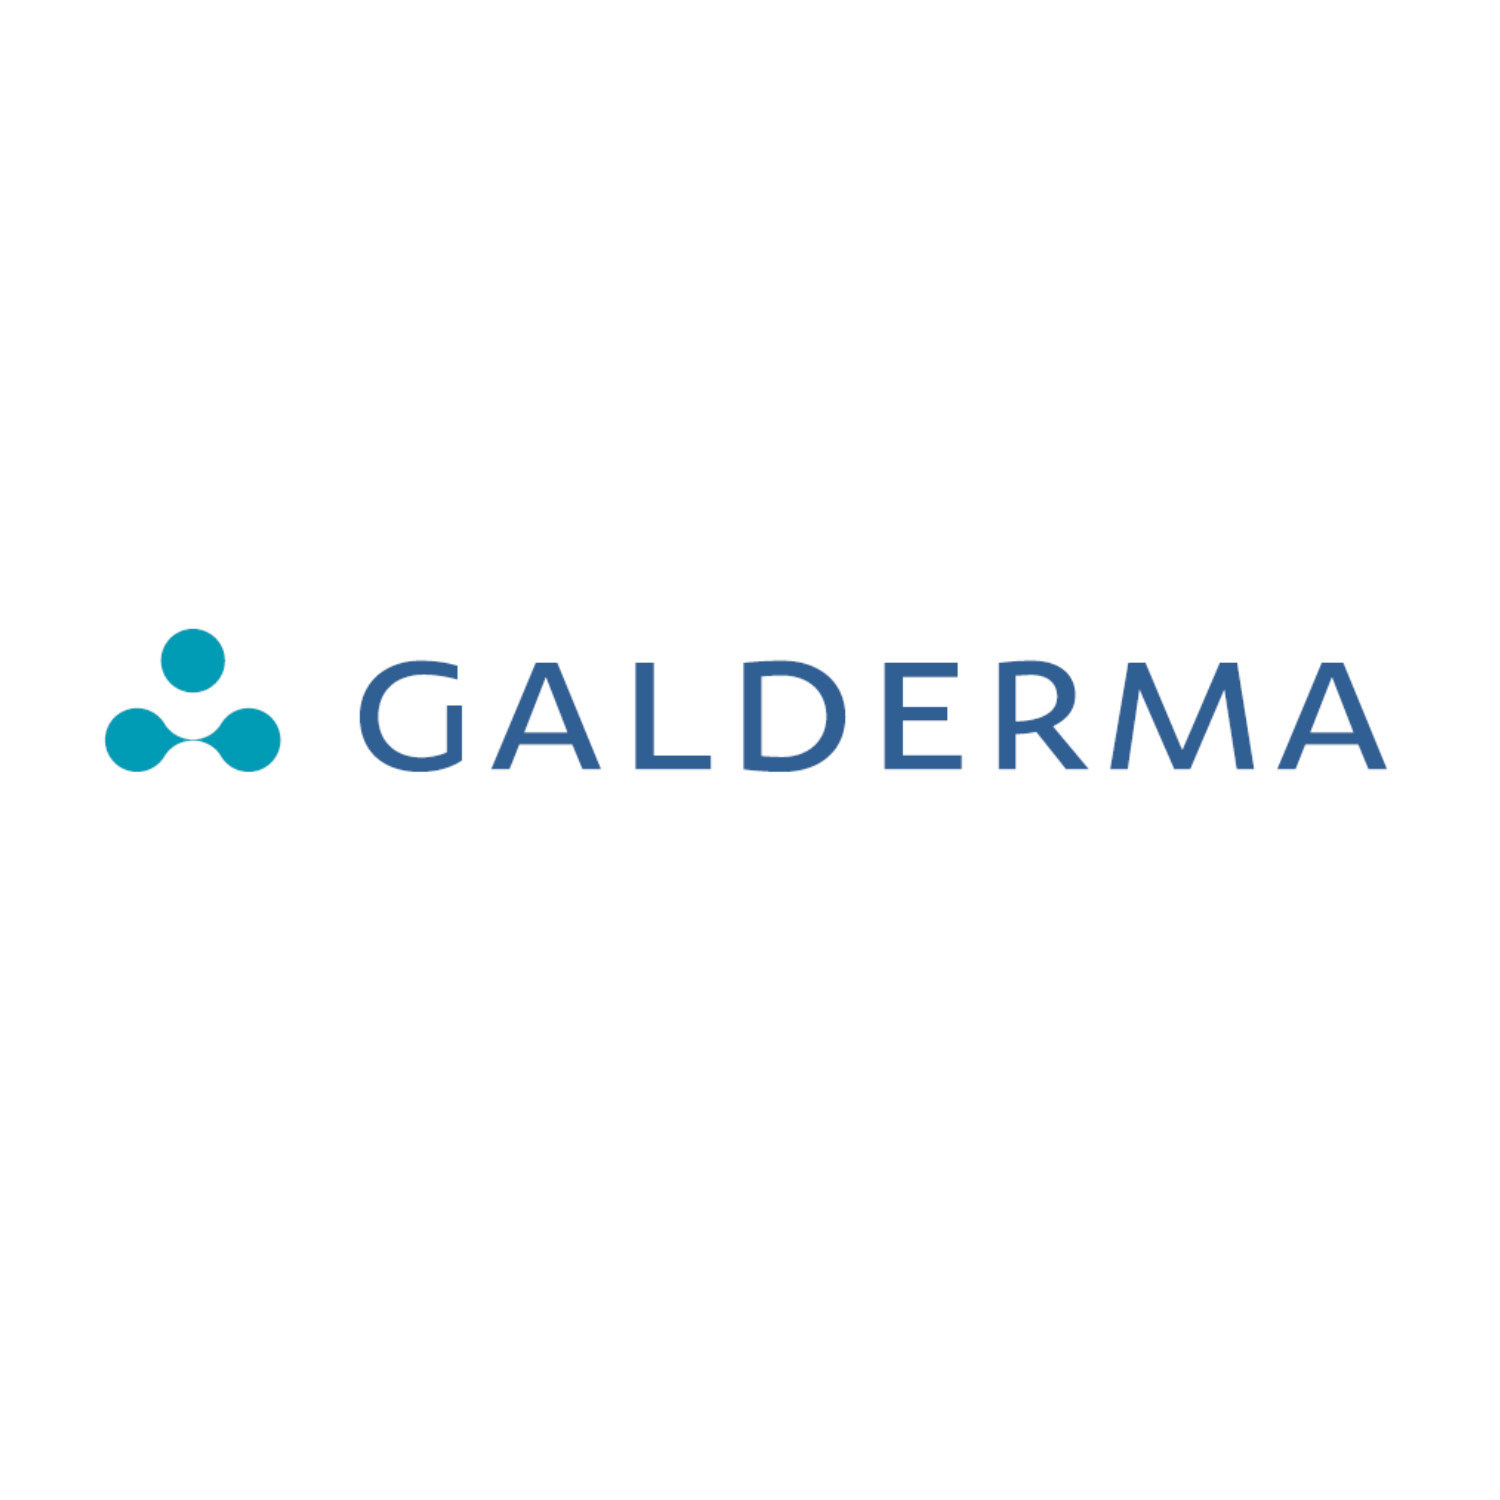 Galderma's Aklief (trifarotene) Receives the US FDA's Approval for the Treatment of Acne in 20 Years